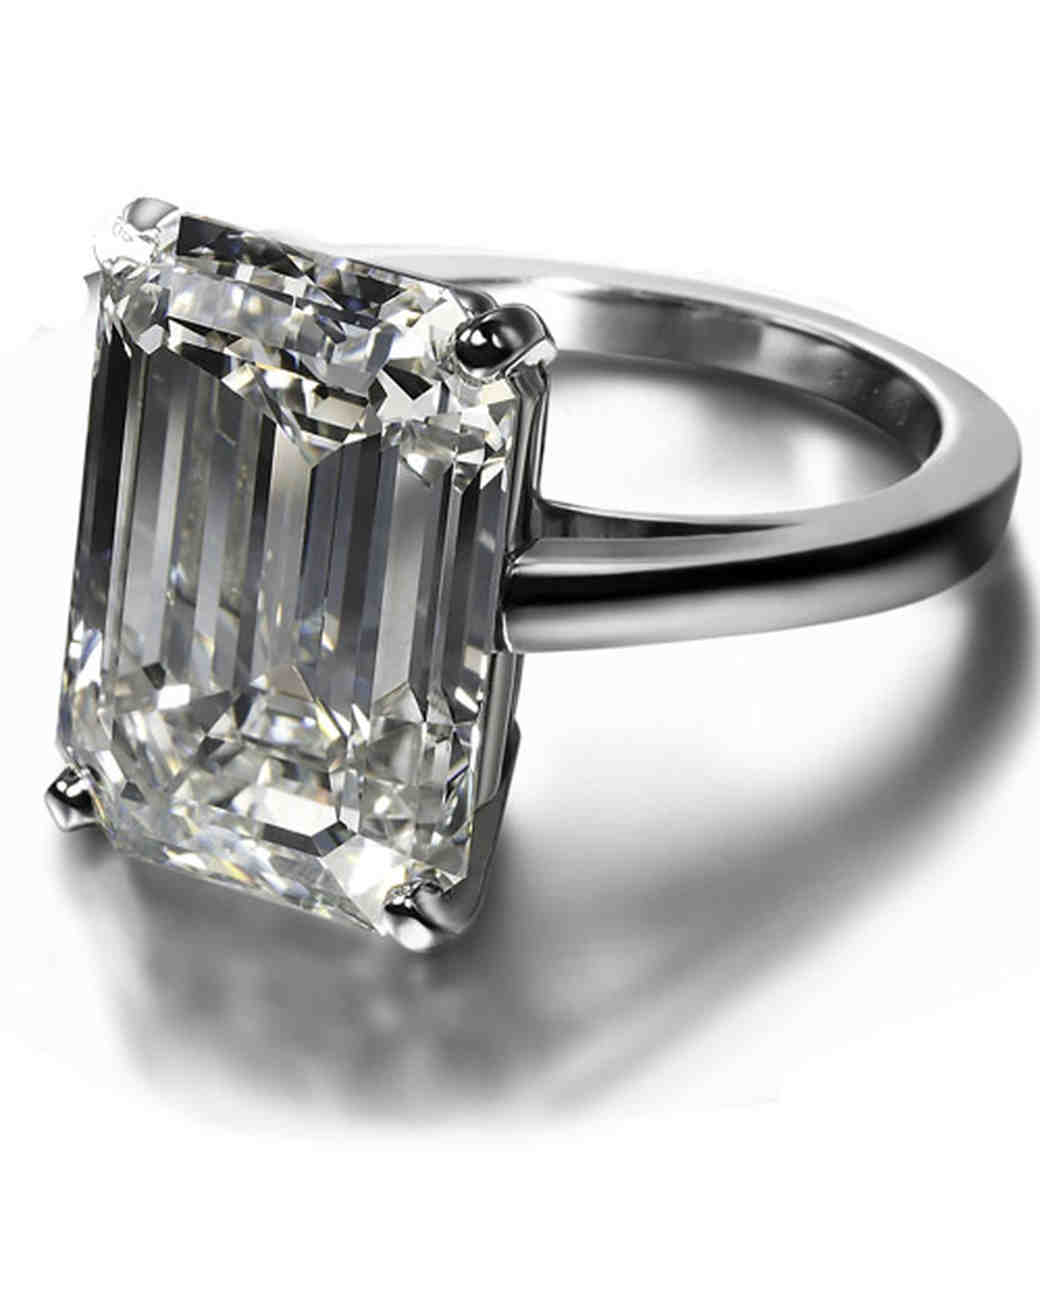 De Beers Emerald-Cut Engagement Ring